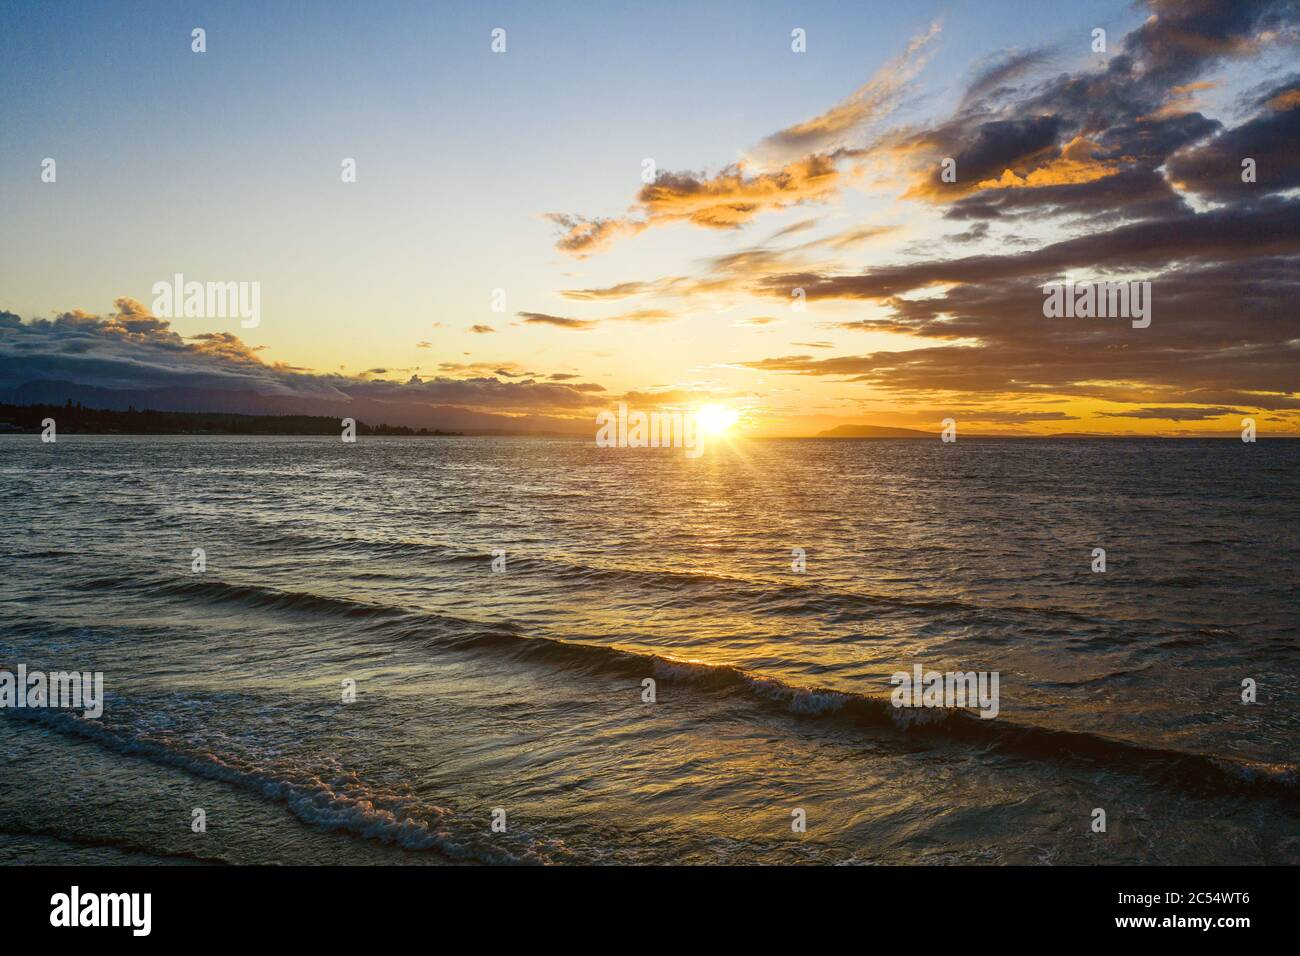 Sun Touching Horizon During Beautiful Sunset At The Beach Water And Relaxation Golden Hour Background Wallpaper Stock Photo Alamy